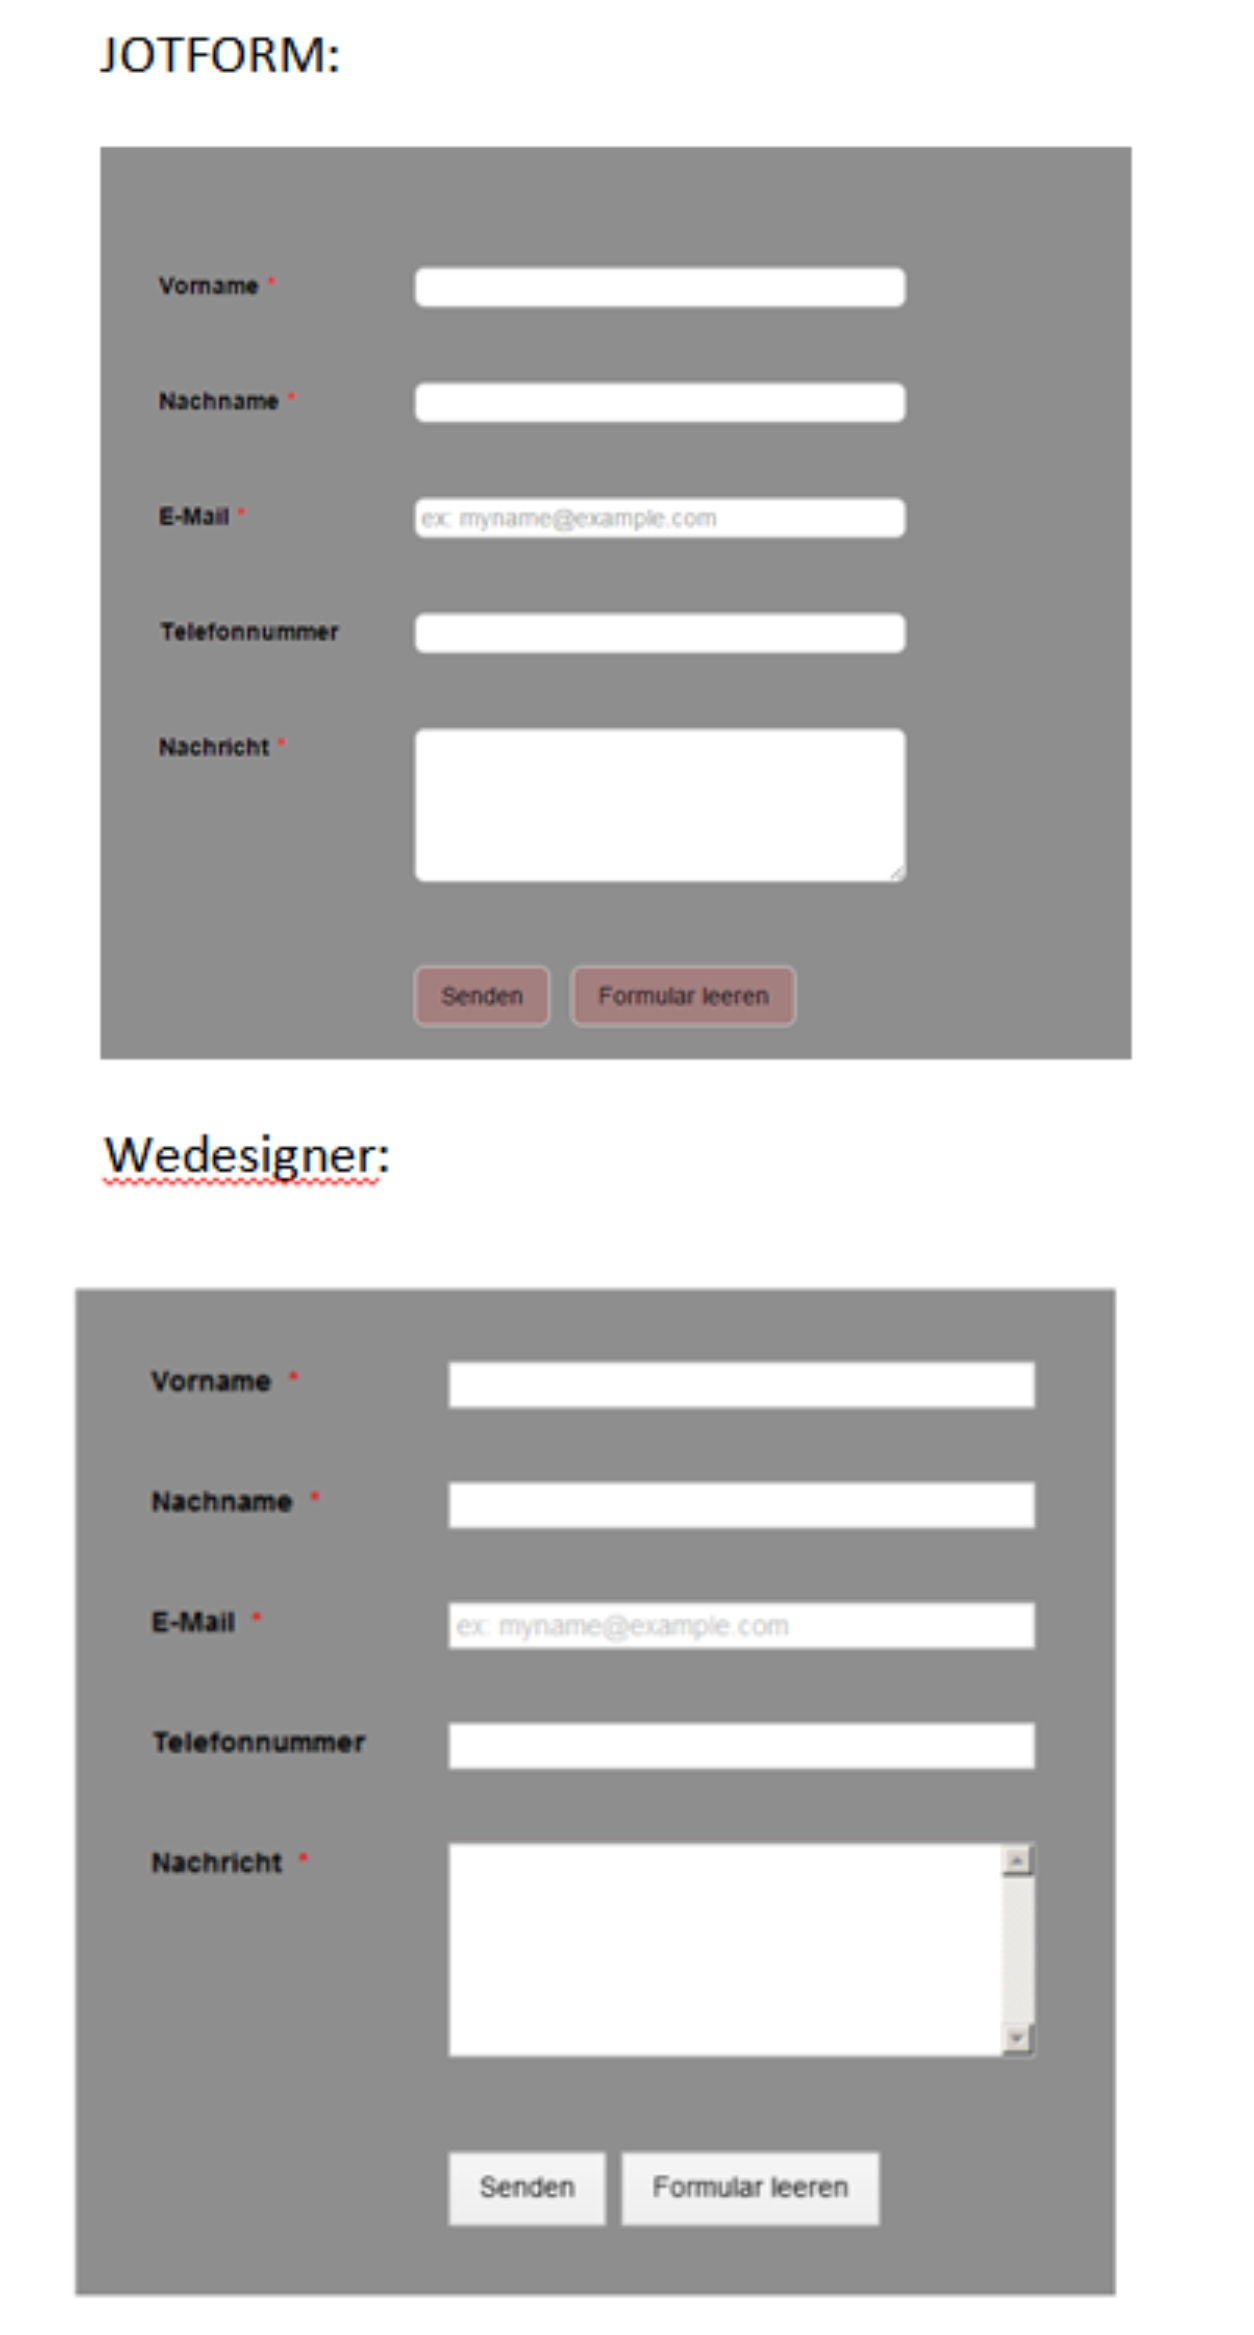 Nice 10 Tips To Making A Resume Huge 100 Day Plan Template Clean 100 Free Resume Builder And Download 13 Birthday Invitation Templates Young 1300 Resume Government Samples Selection Criteria Dark15 Year Old First Job Resume Embedding Form Into Magix Web Designer | JotForm